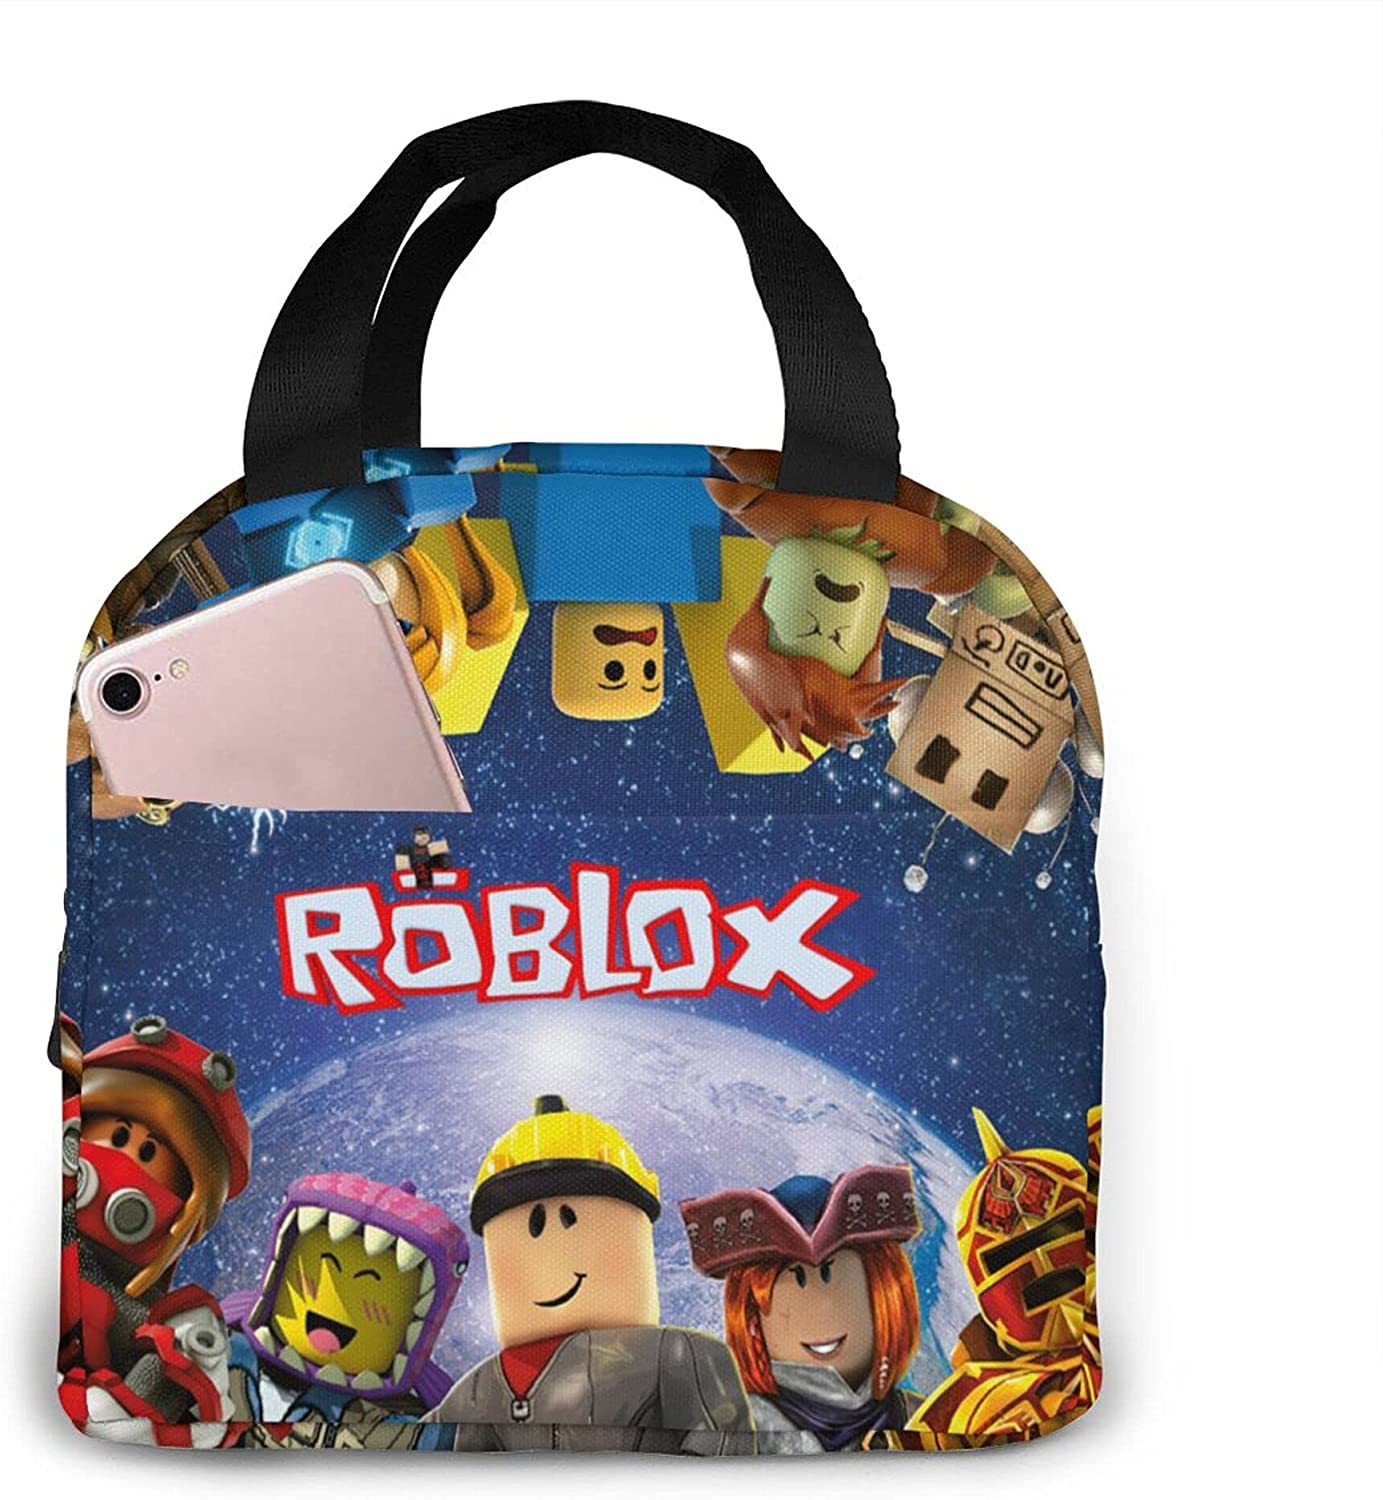 Cartoon Game Lunch Box For Boy Insulated Lunch Bag Large Lunch Tote Bag Cooler Tote For Work Picnic Durable Oxford Cloth Warm Snack